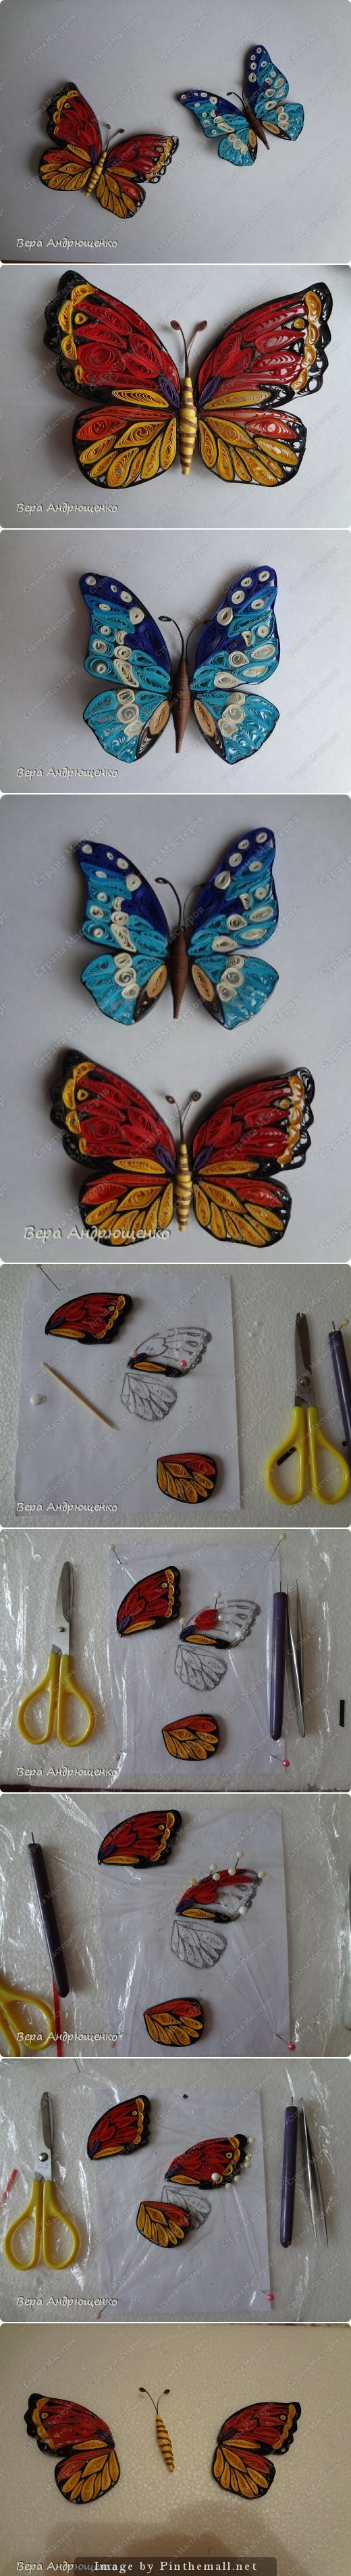 BUTTERFLY TUTORIAL http://stranamasterov.ru/node/660363 - created ... for Quilling Butterfly Tutorial  58cpg